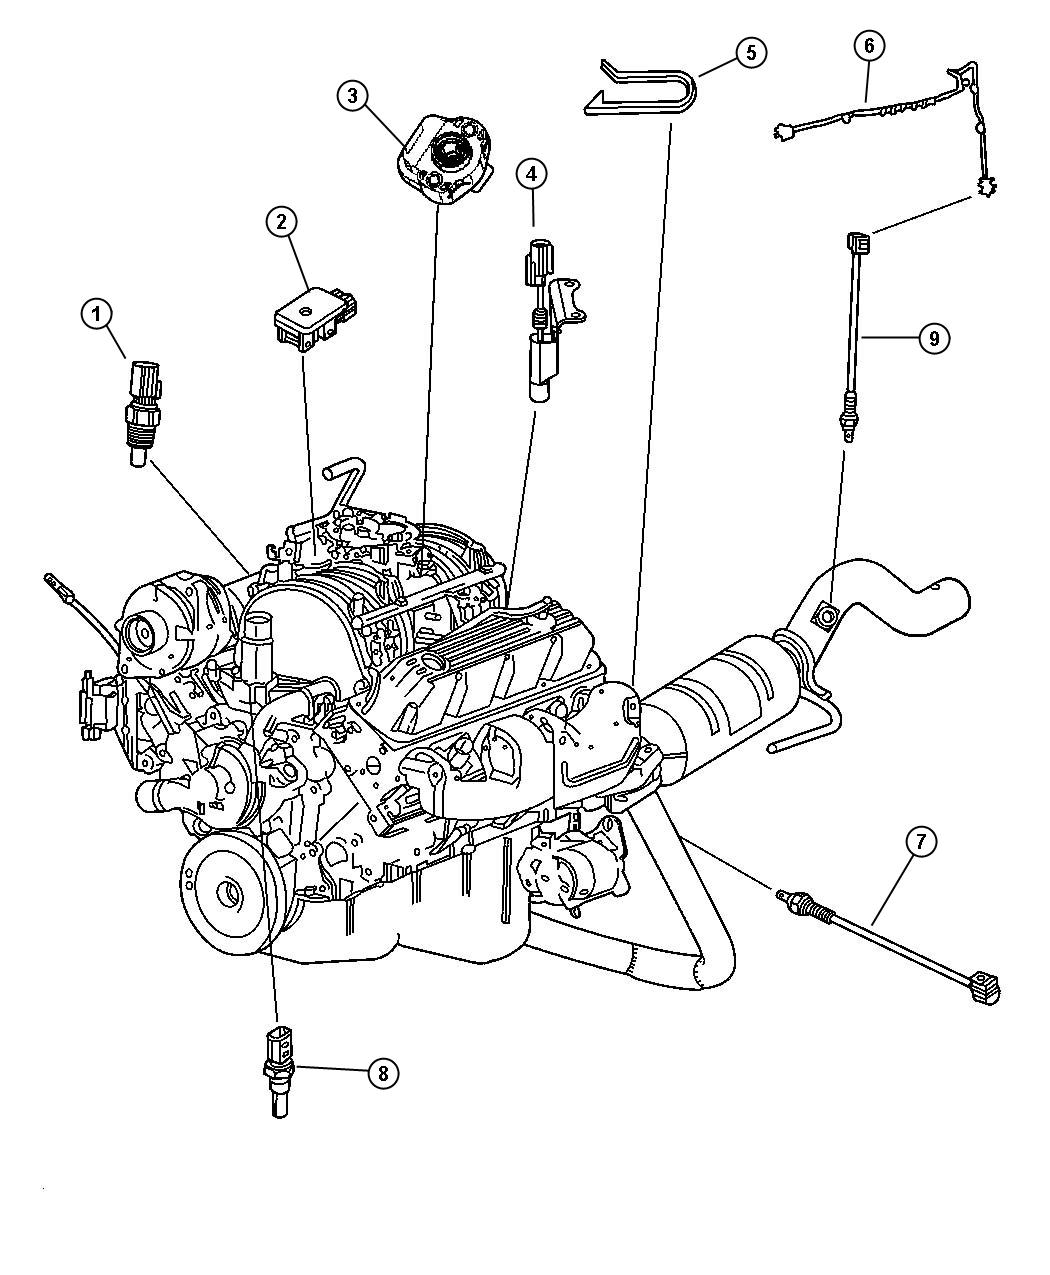 b18a1 engine harness